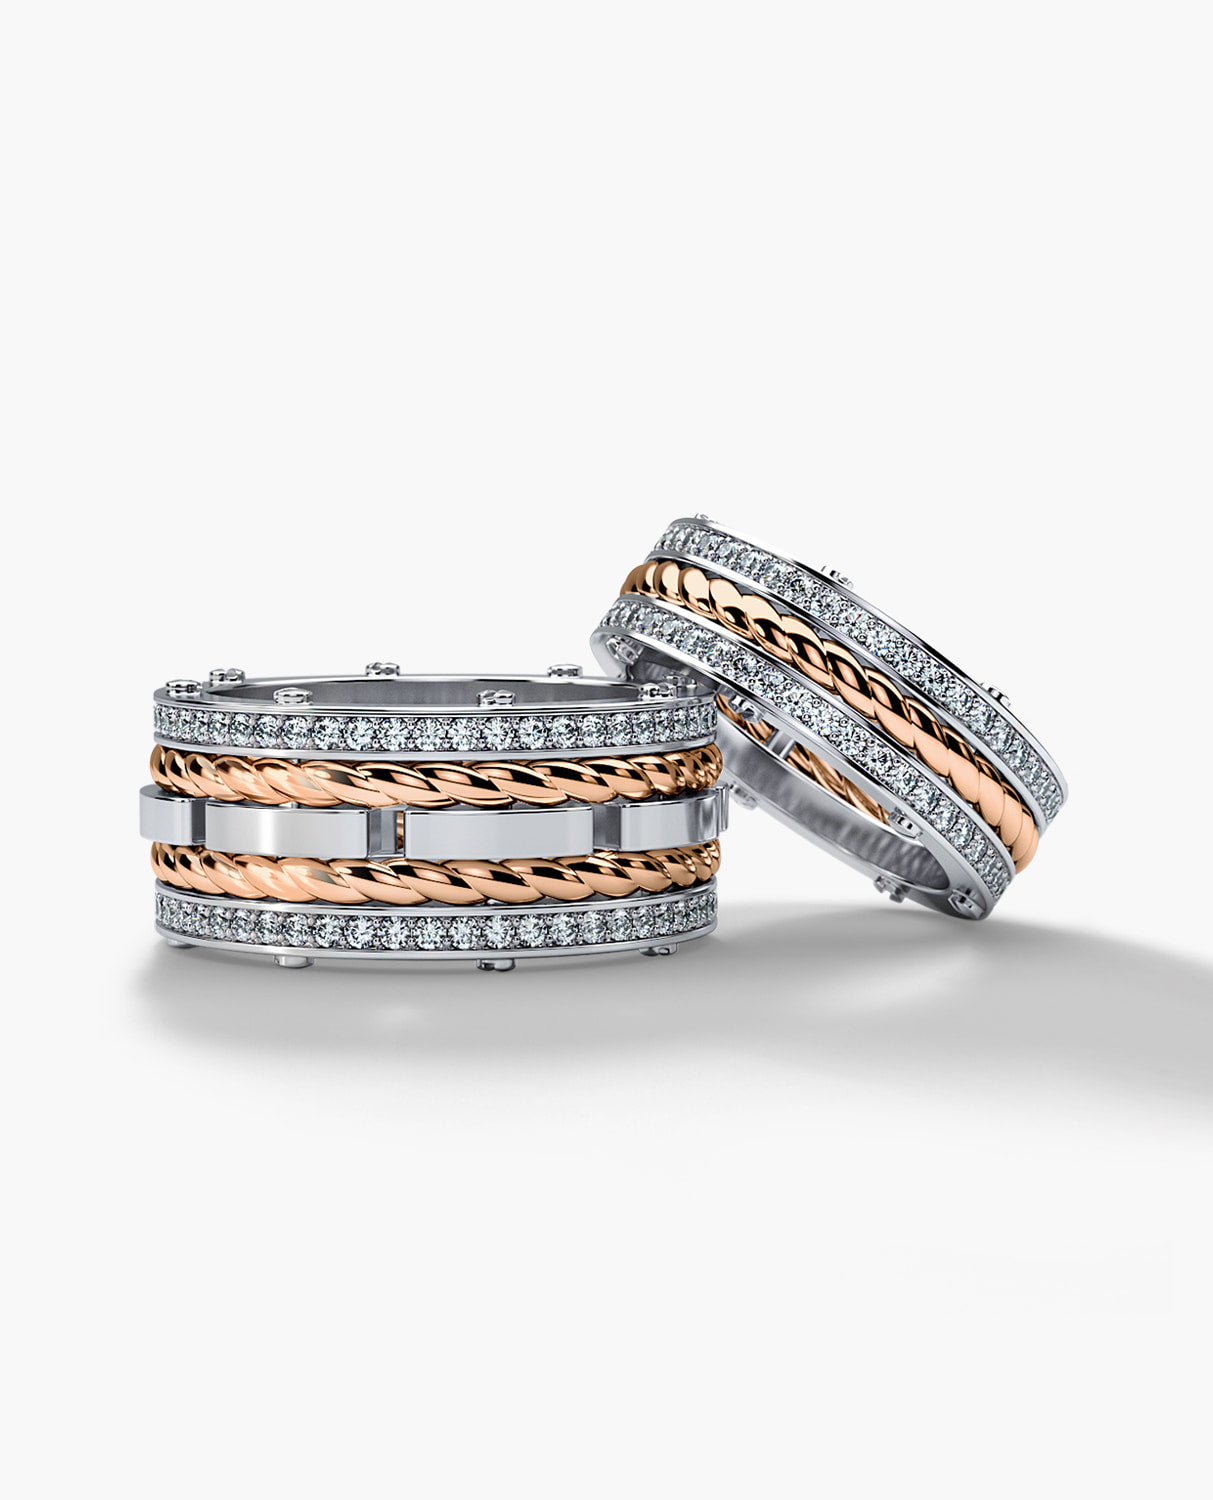 ROPES Two-Tone Gold Matching Wedding Band Set